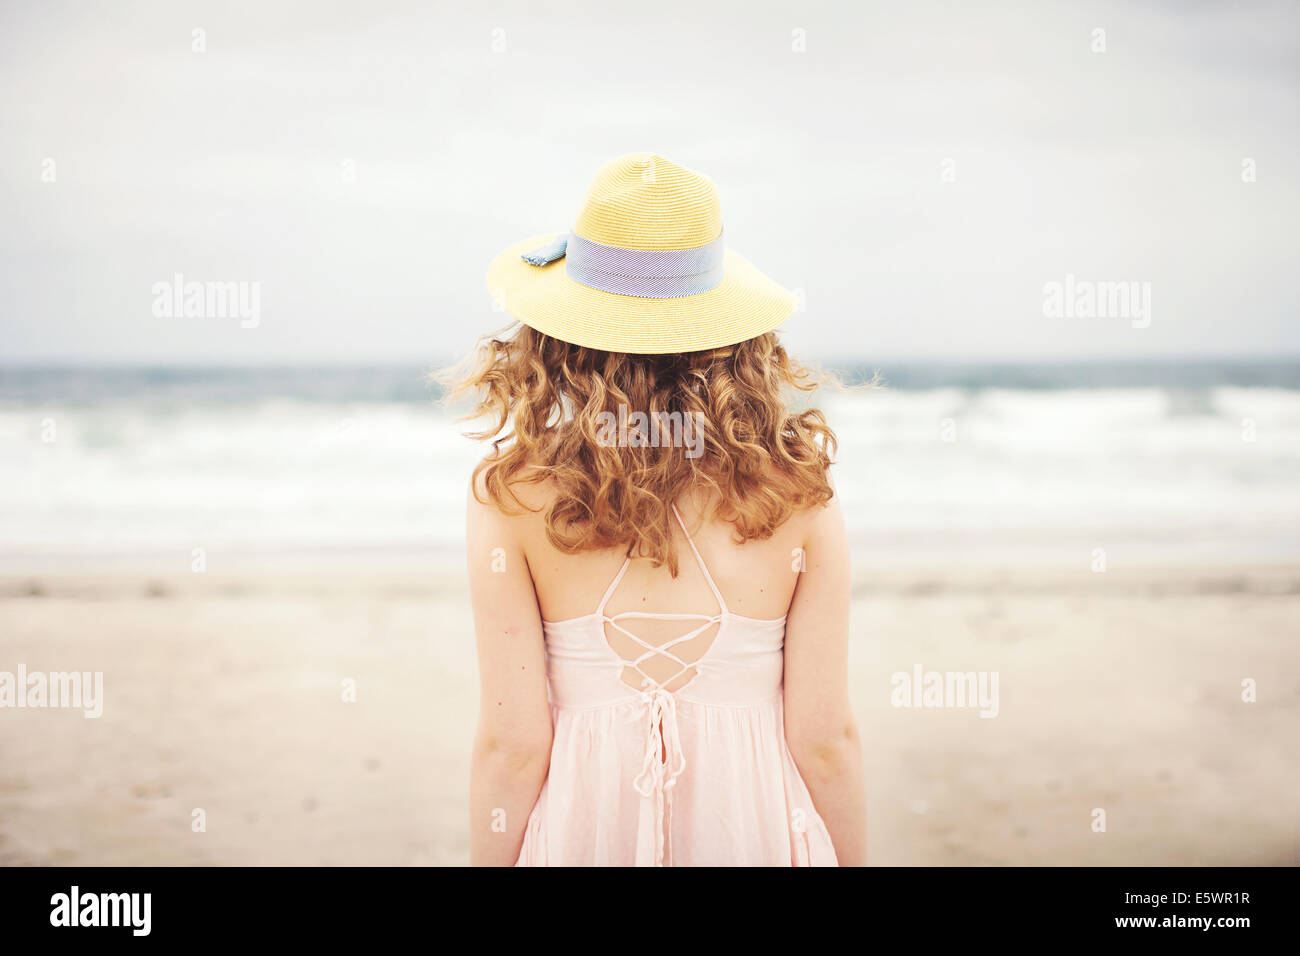 Rear view of teenage girl standing in front of sea, Hampton, New Hampshire, USA - Stock Image